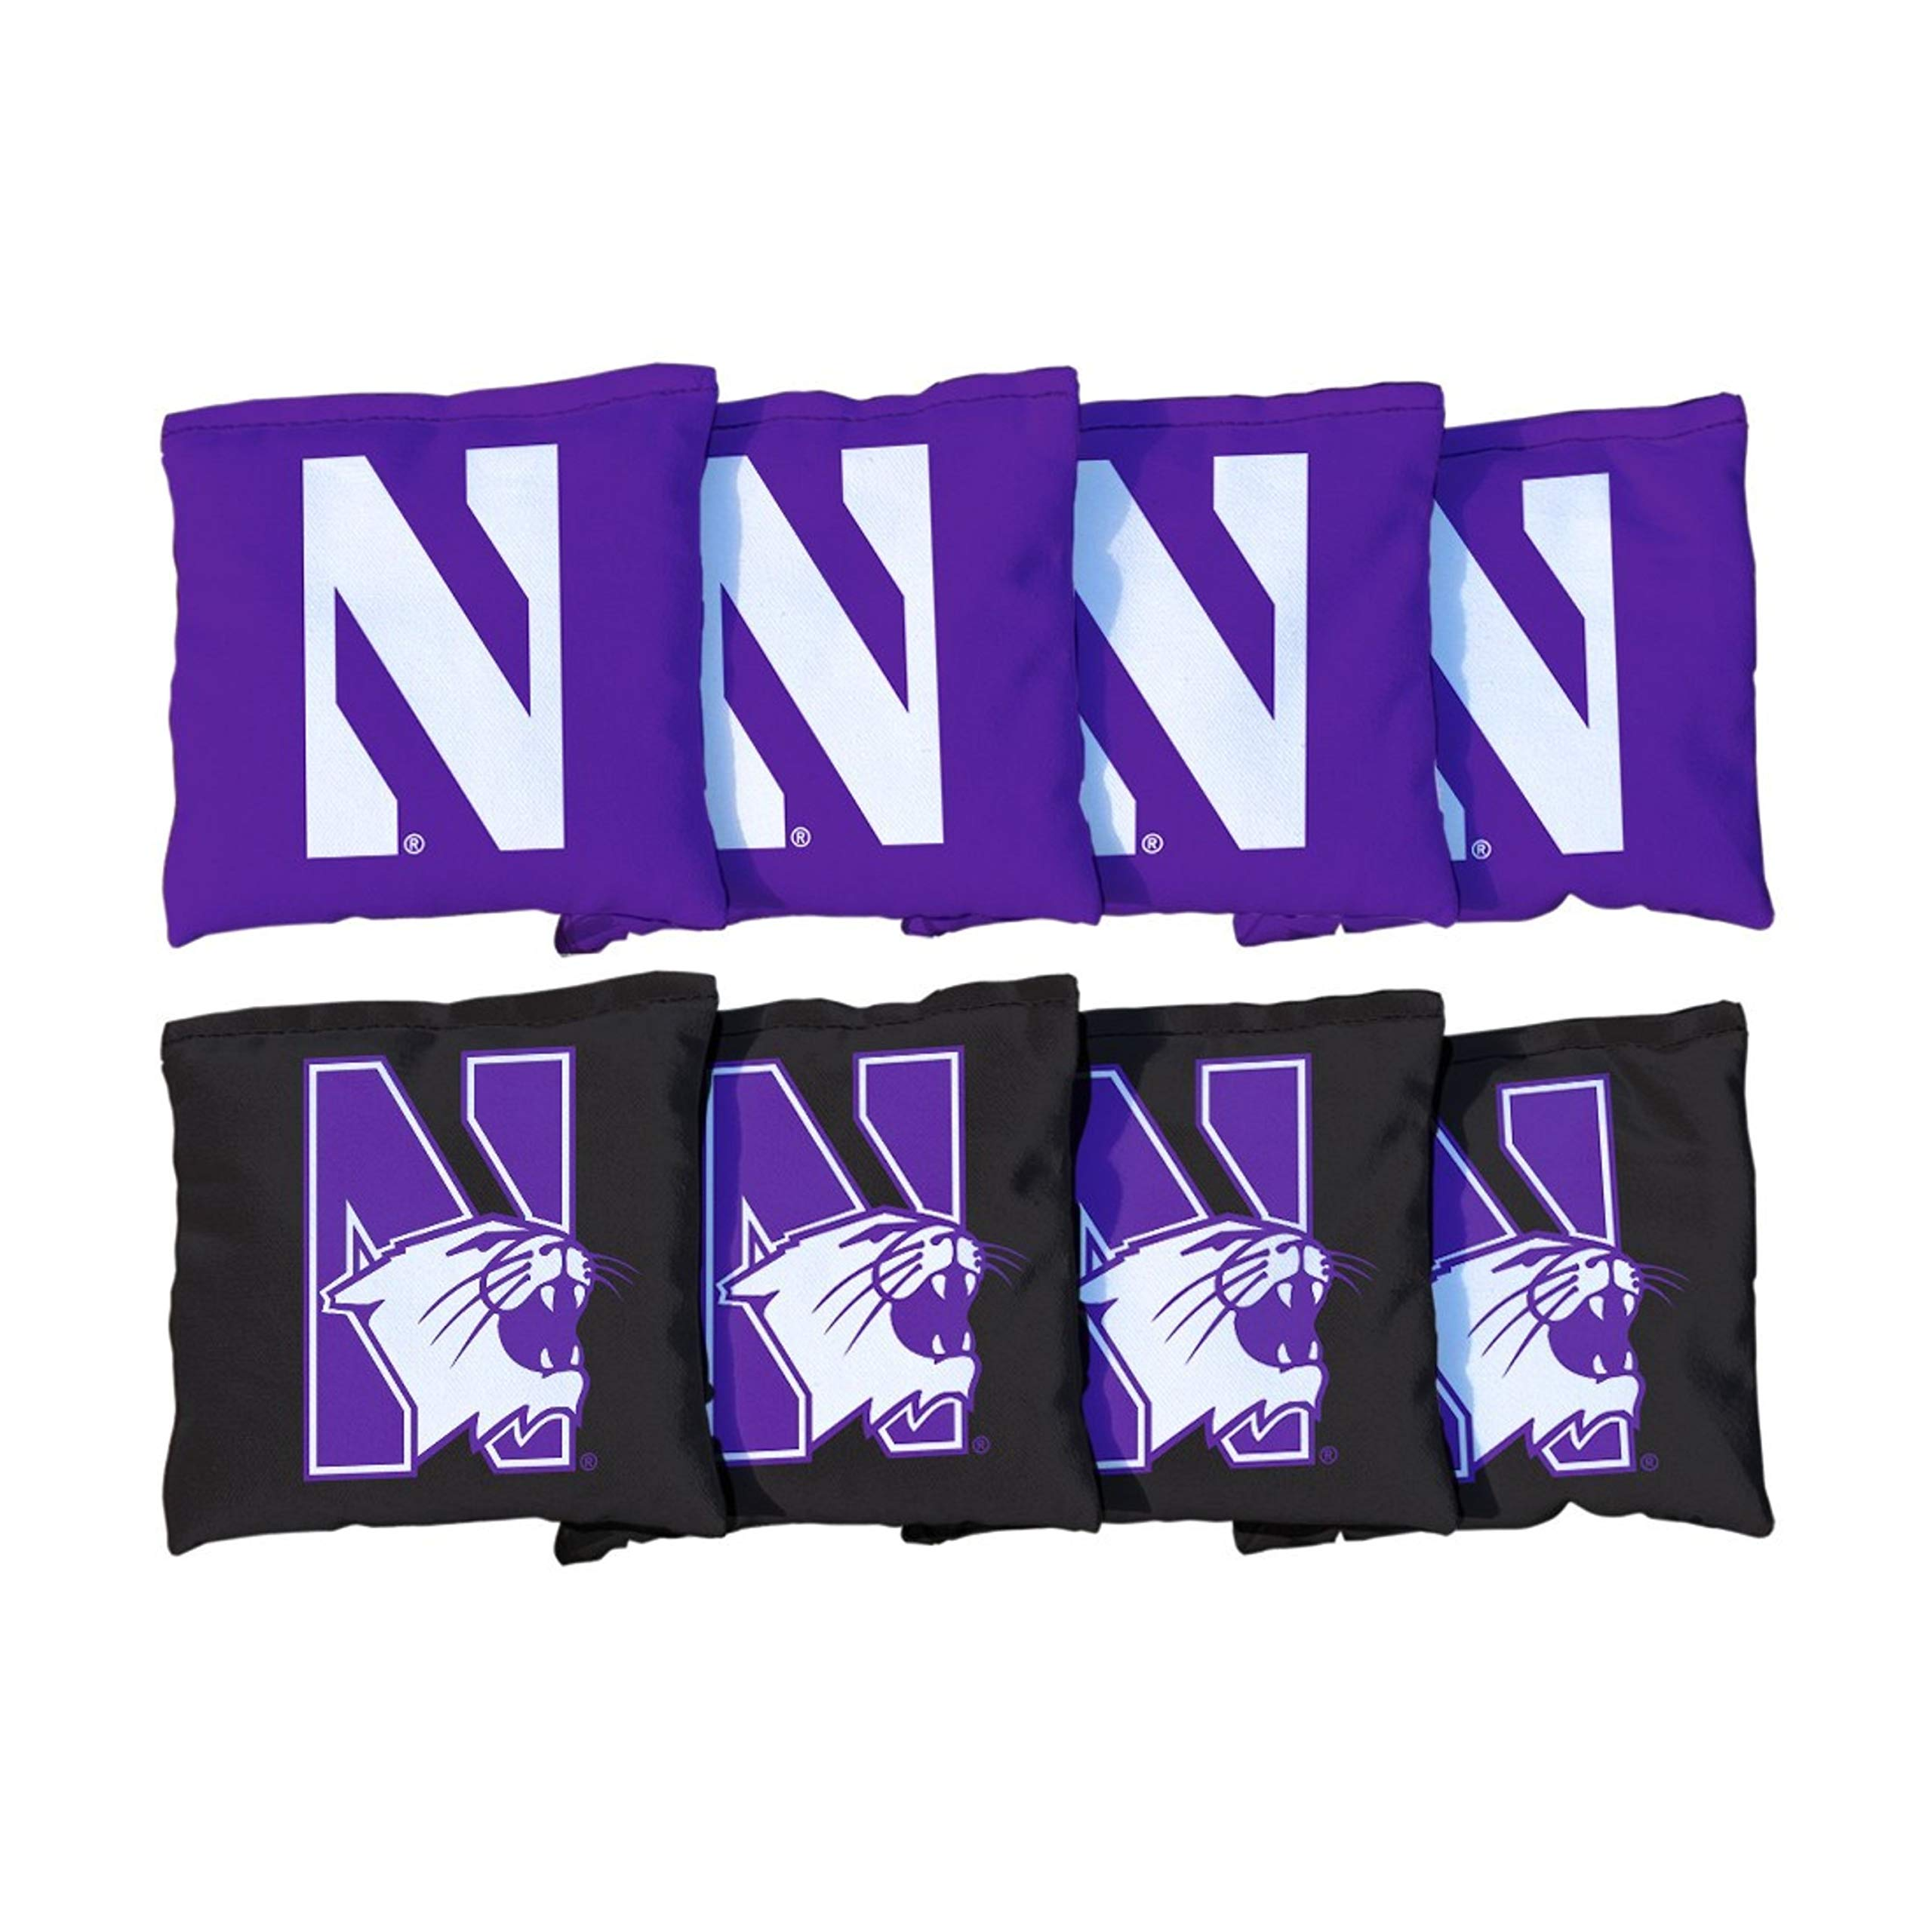 Victory Tailgate NCAA Collegiate Regulation Cornhole Game Bag Set (8 Bags Included, Corn-Filled) - Northwestern Wildcats by Victory Tailgate